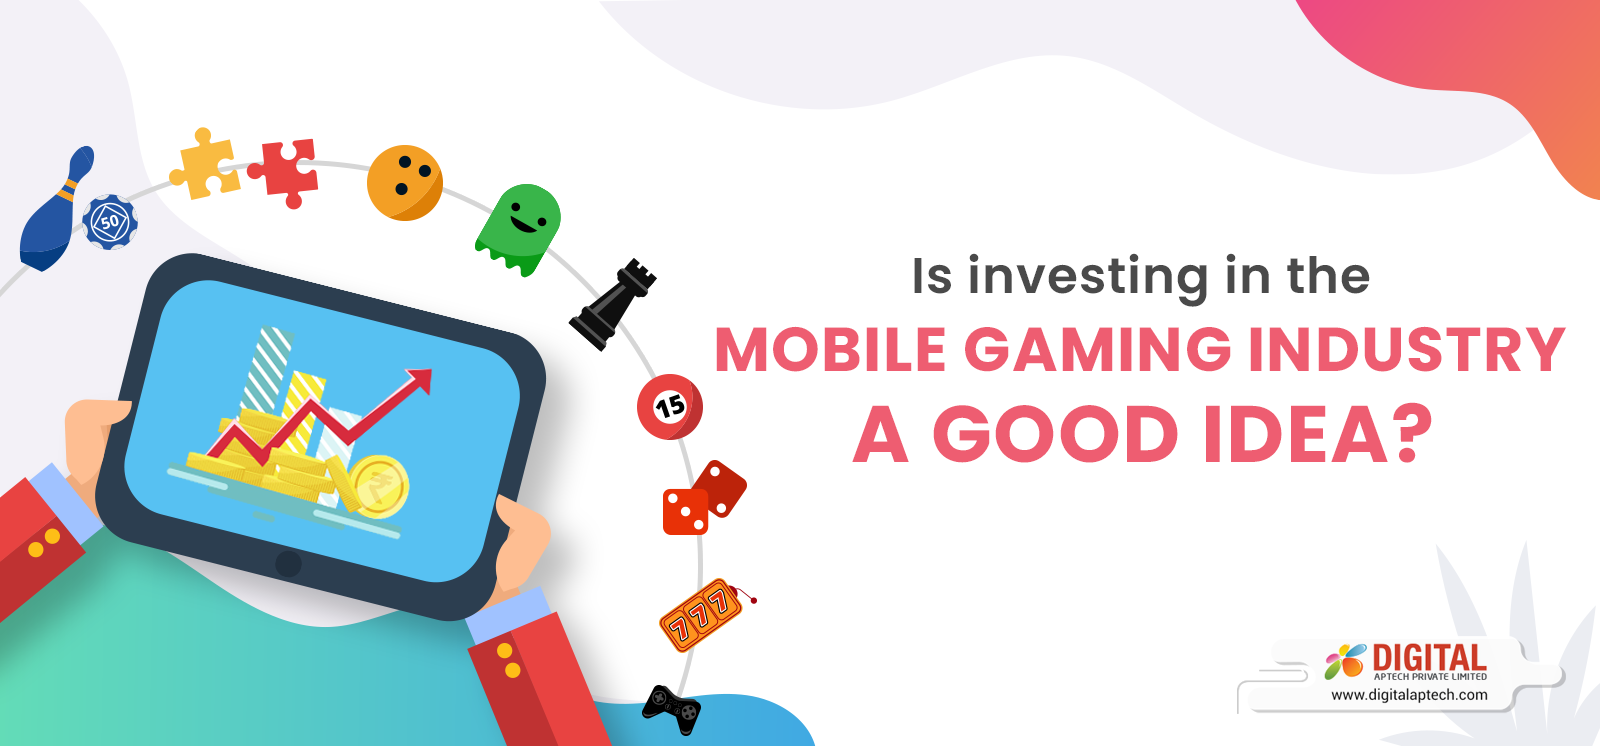 3 Compelling Reasons to Invest in the Mobile Gaming Industry